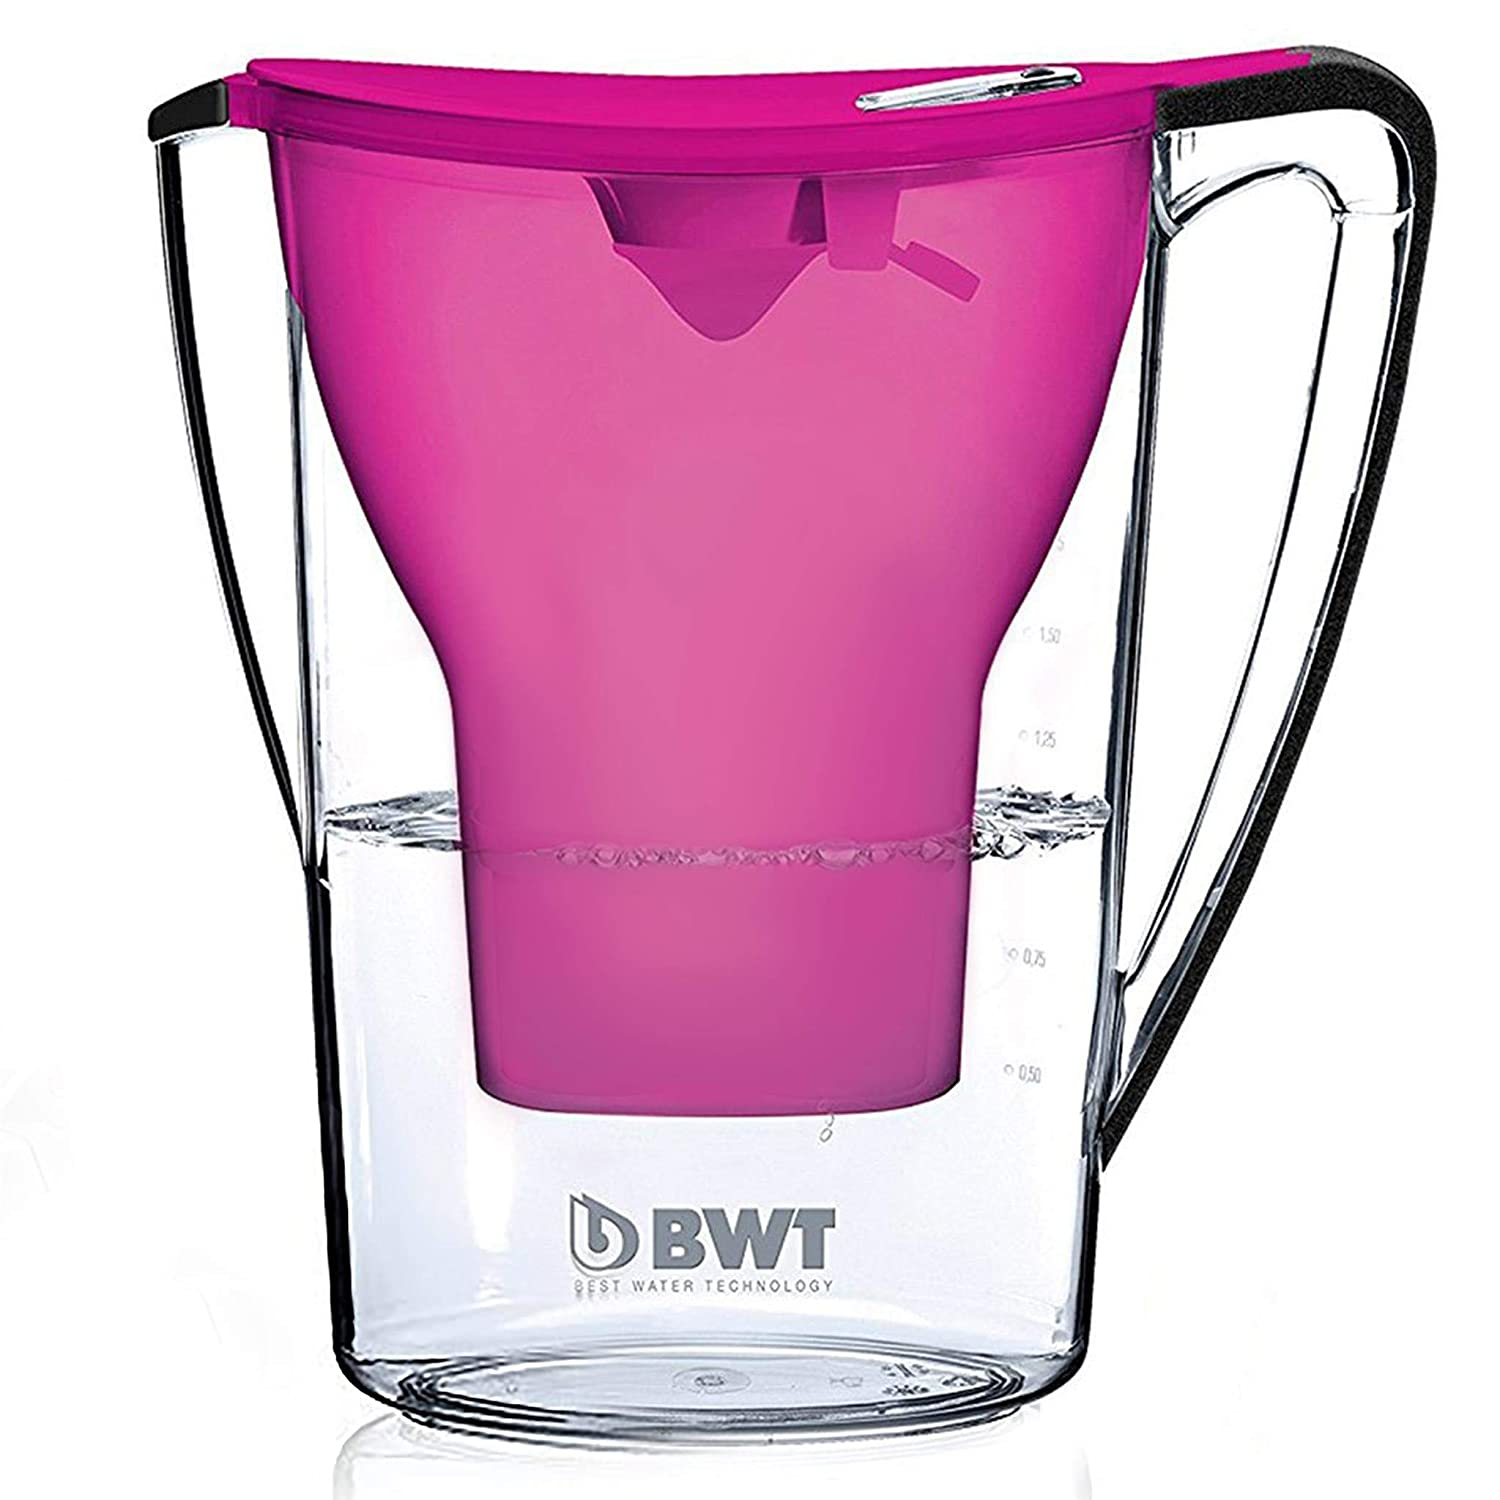 BWT Award Winning Austrian Quality Water Filter Pitcher, Patented Magnesium Technology for Superior Filtration and Taste (Bonus 60 Day Filter Included) BPA-Free BWT Patented Mg2+ Technology